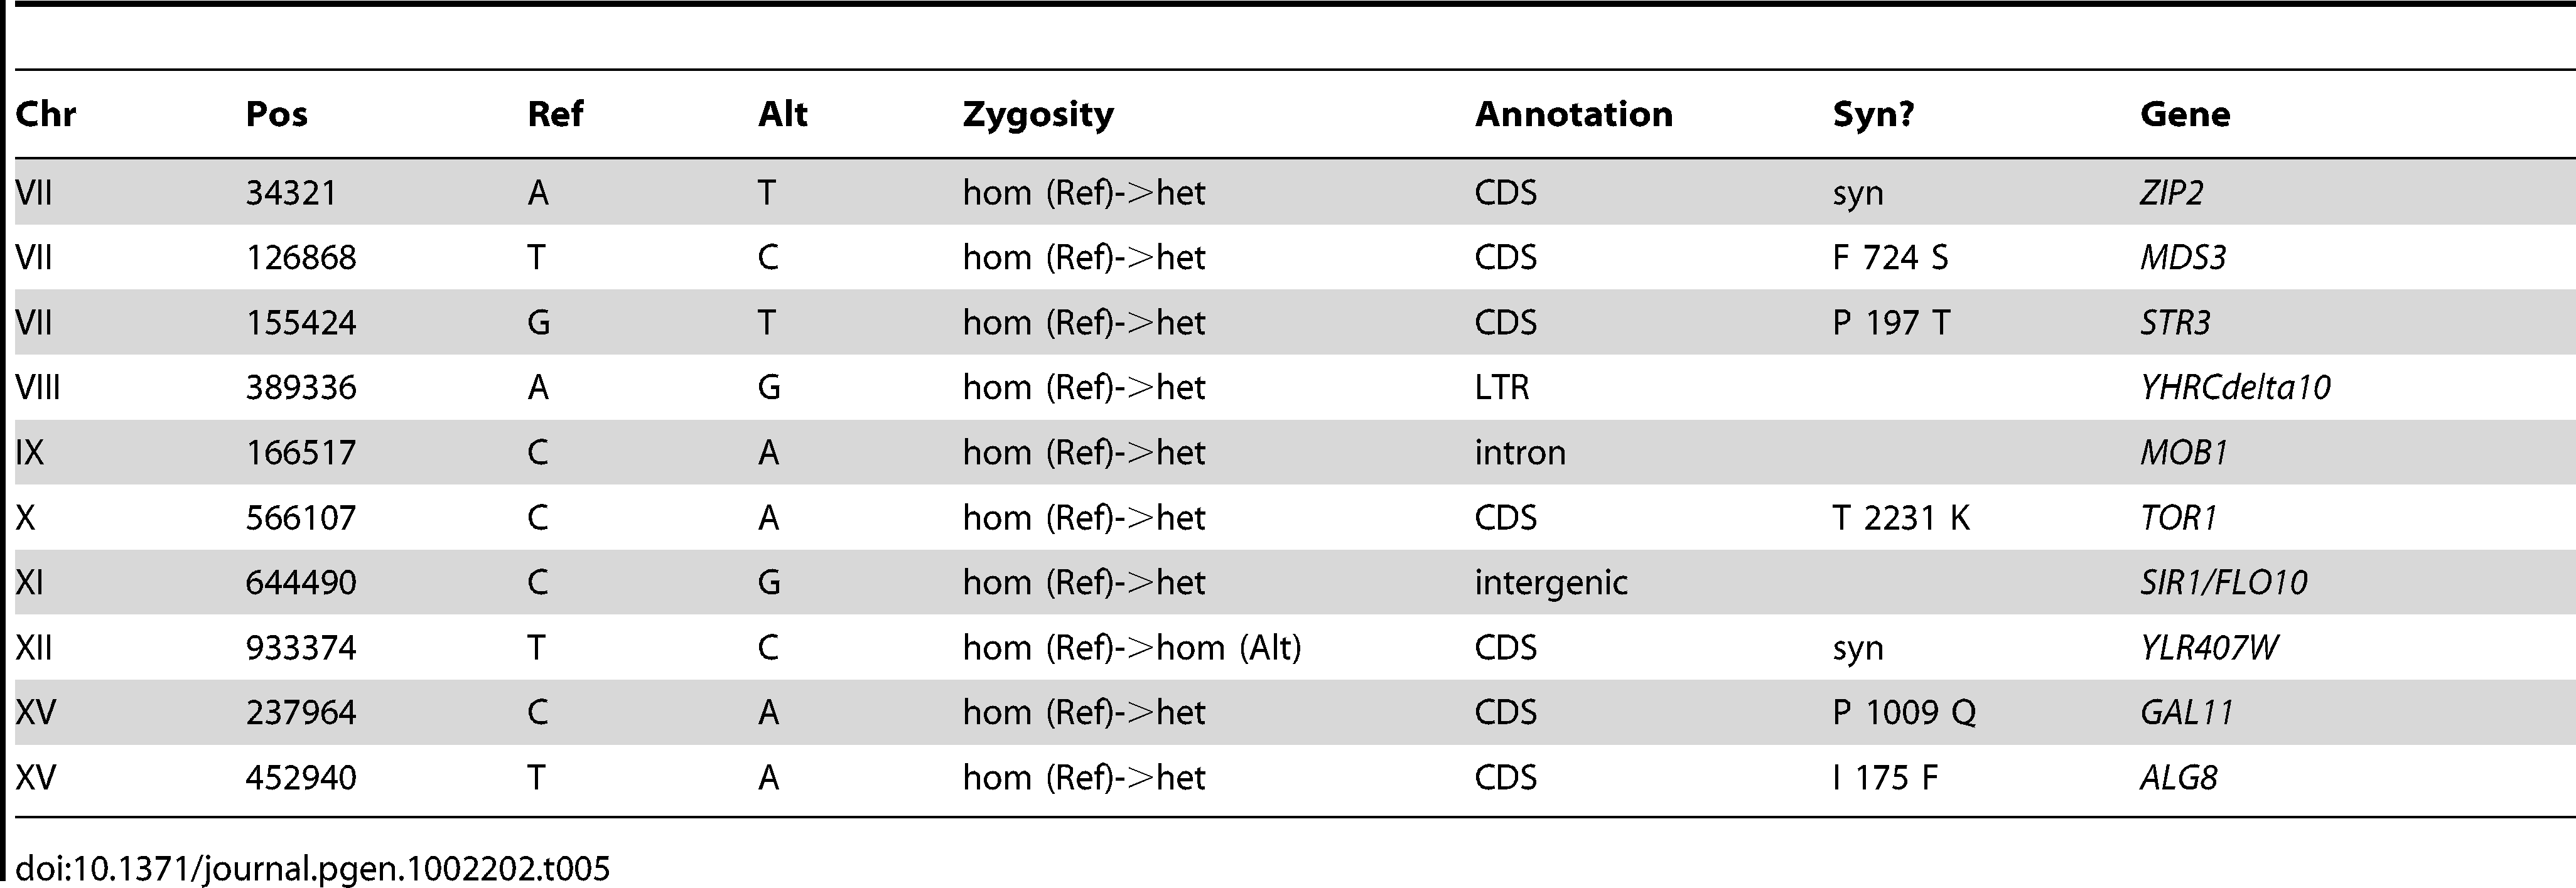 Summary of Substitutions and Indels for E5 (264 generations).